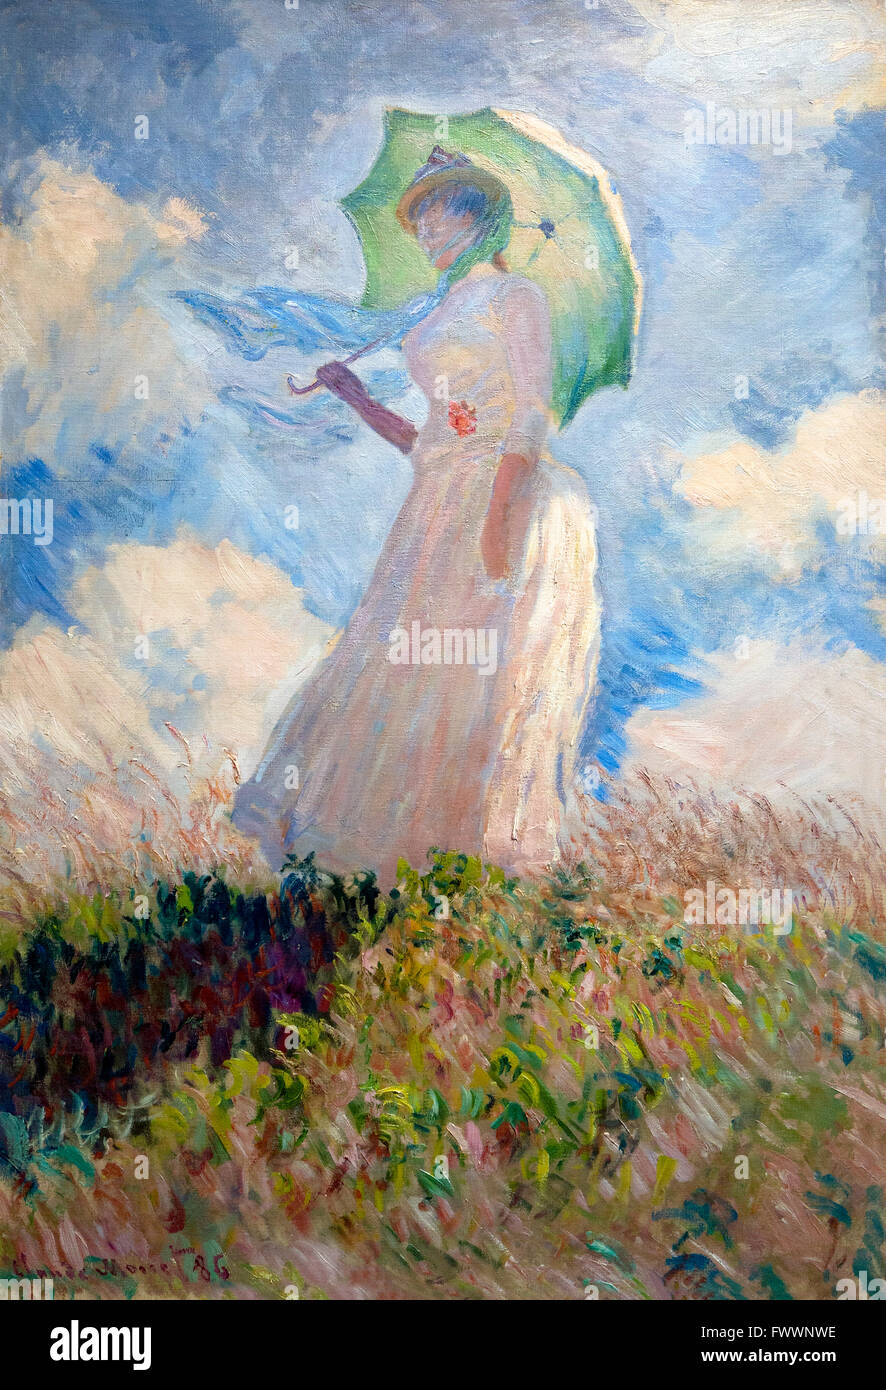 Study of a Figure Outdoors, Woman with a Parasol, Claude Monet, 1886, Musee D'Orsay Paris France Europe - Stock Image